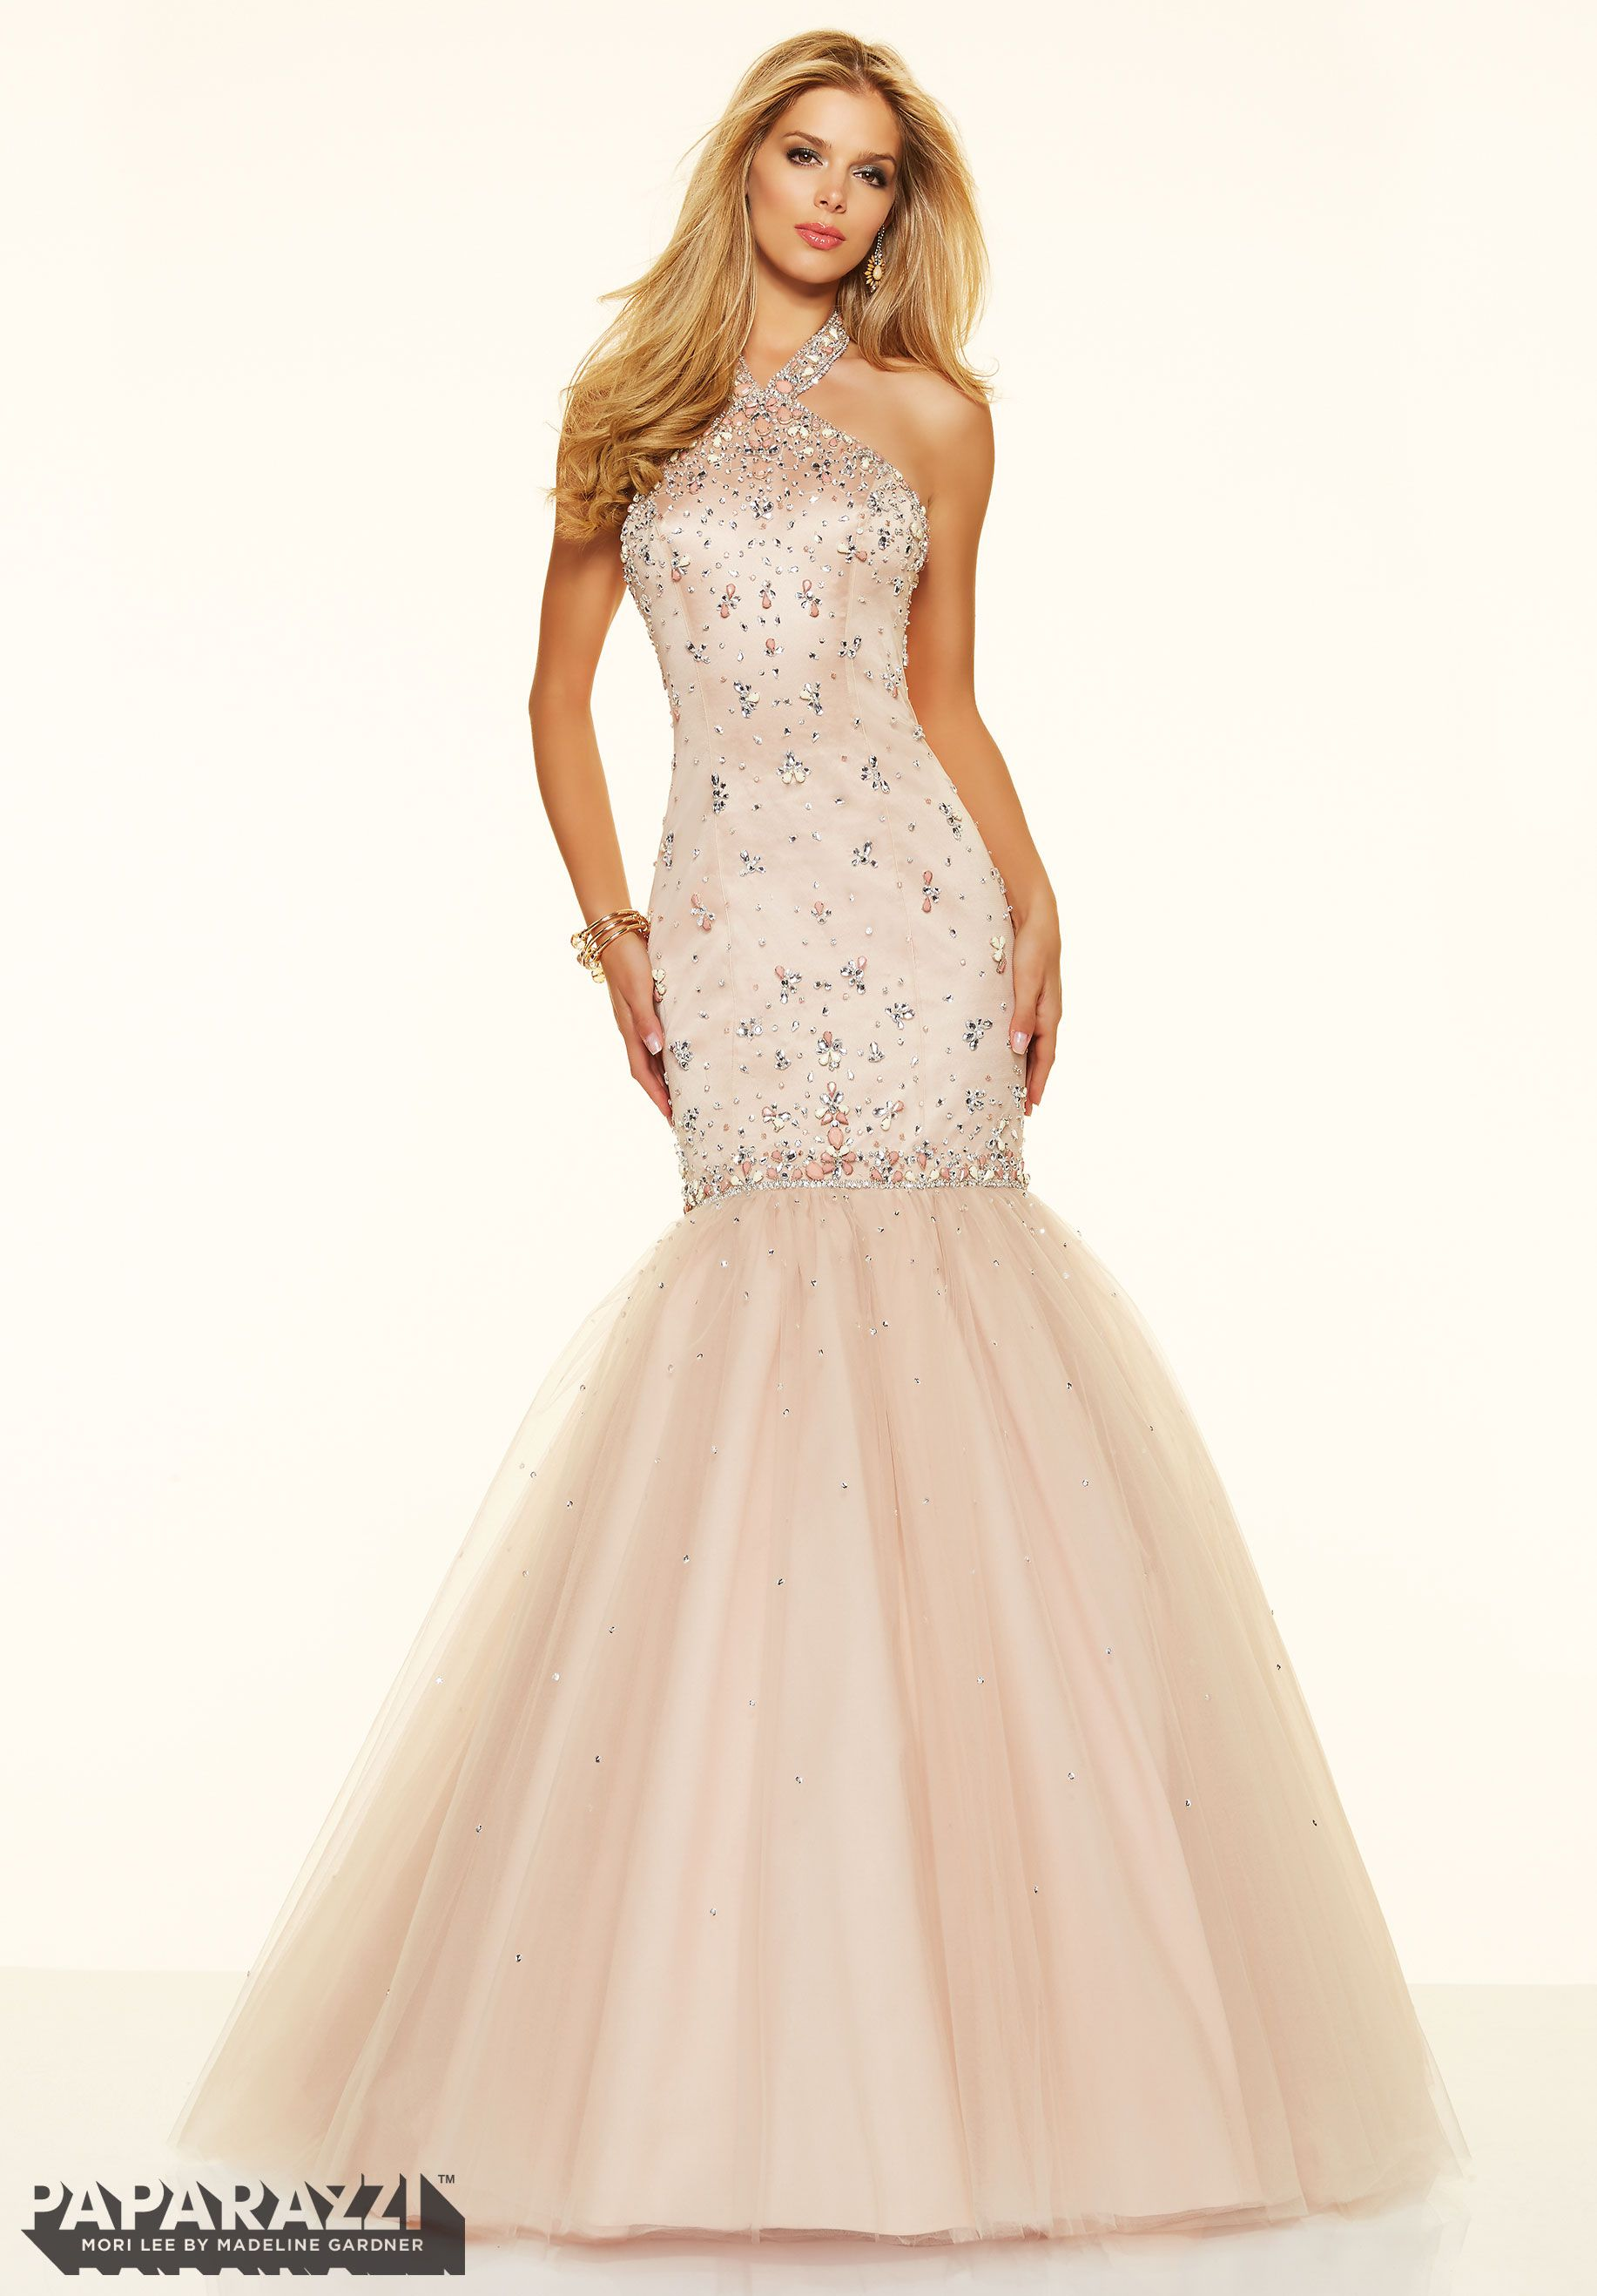 Prom dresses by paparazzi prom sugar coated stones on satin and